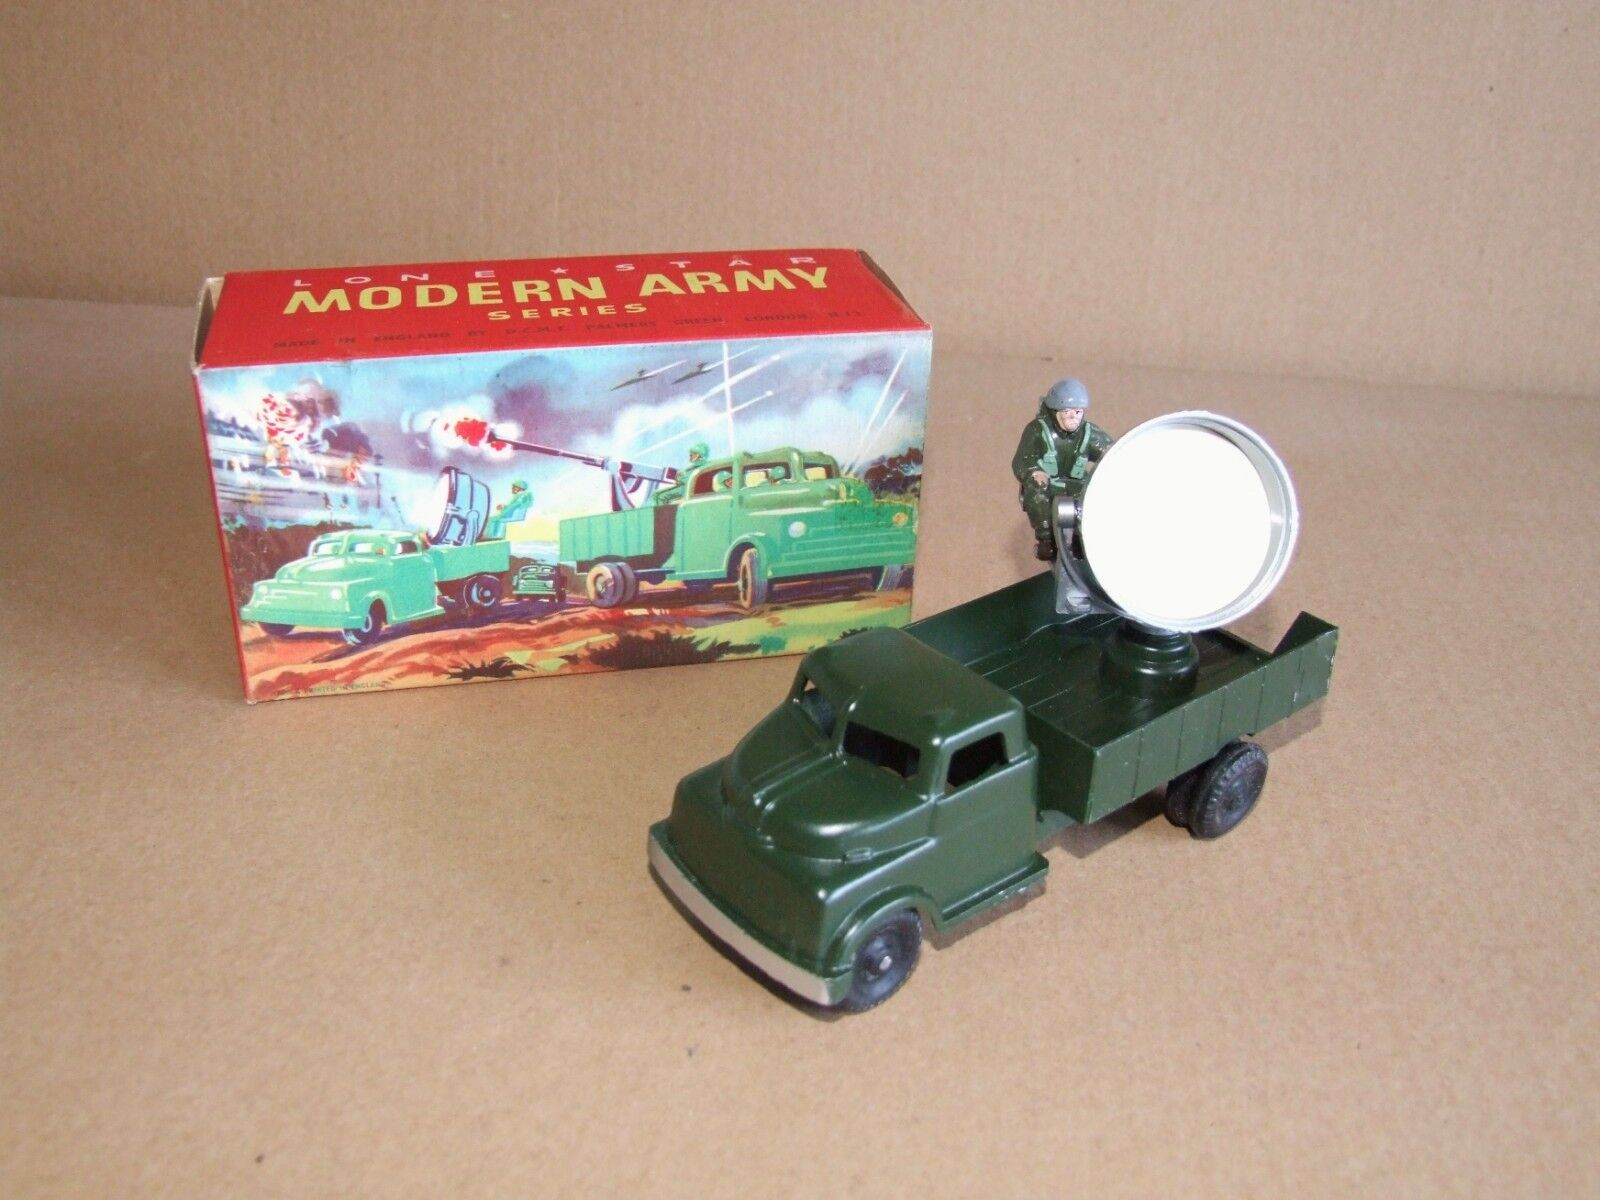 Lone Star armée moderne Series Searchlight Lorry